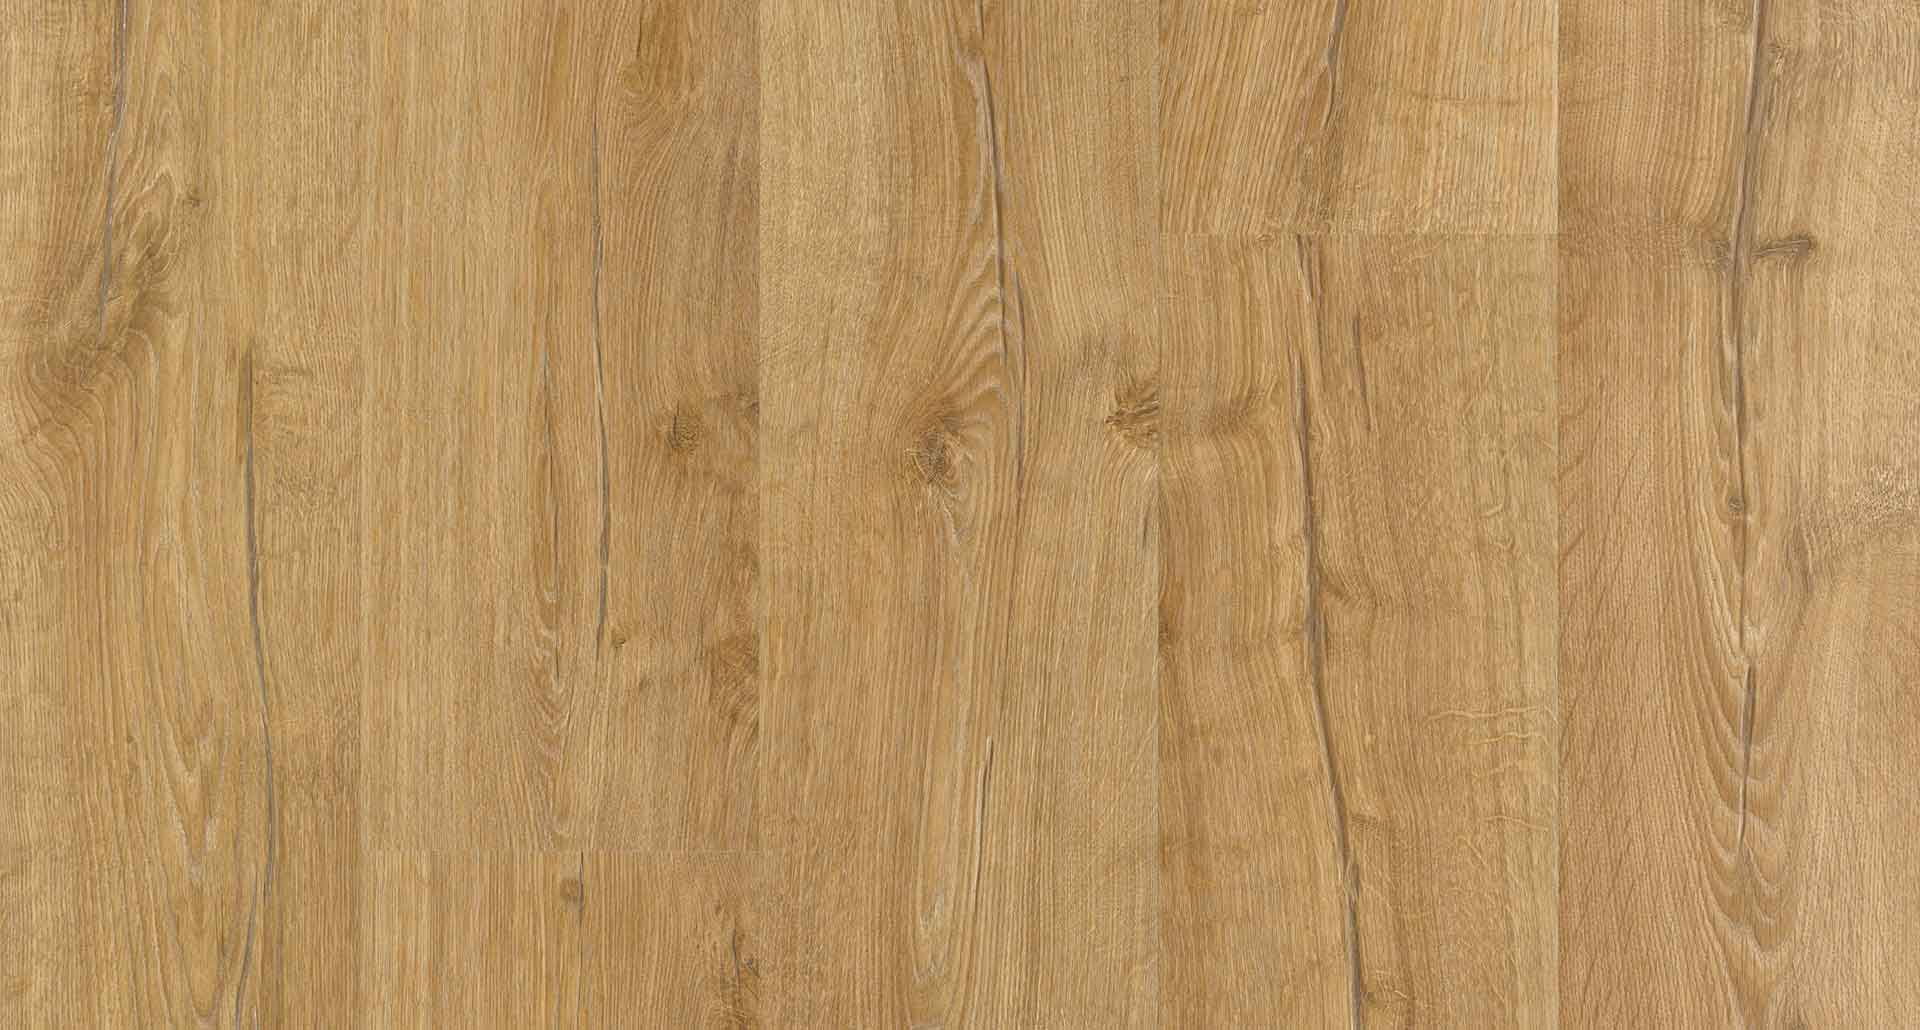 Marigold Oak Pergo Outlast Laminate Flooring Pergo Flooring Oak Laminate Flooring Wood Laminate Flooring Pergo Outlast